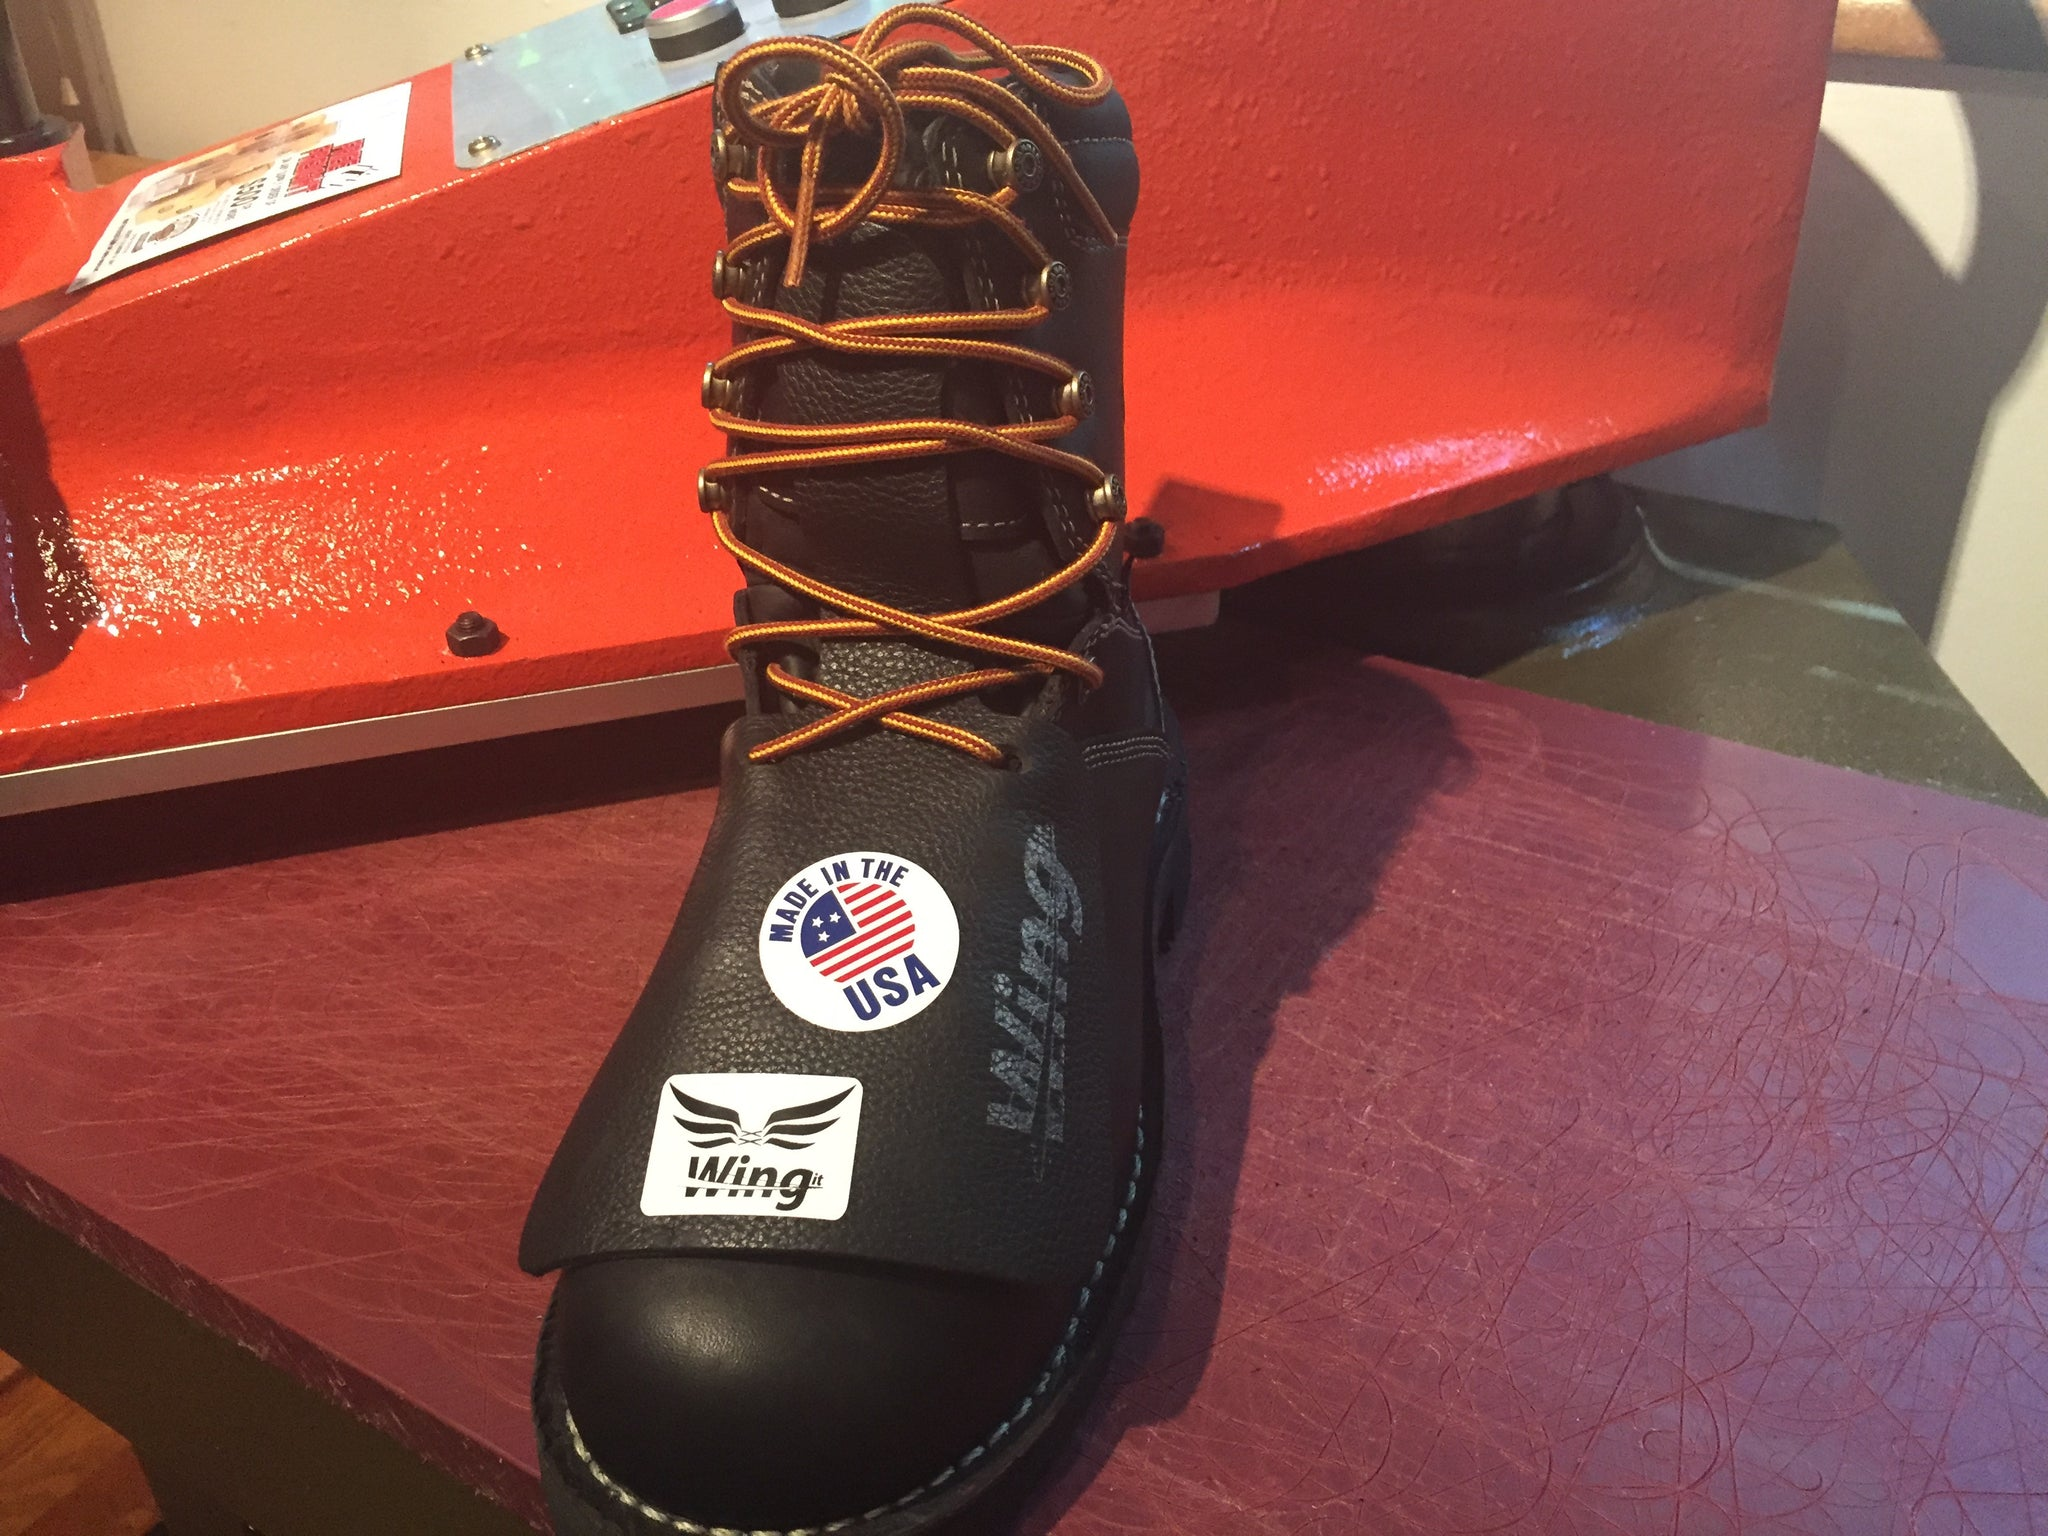 brown black wing it boot covers for welding